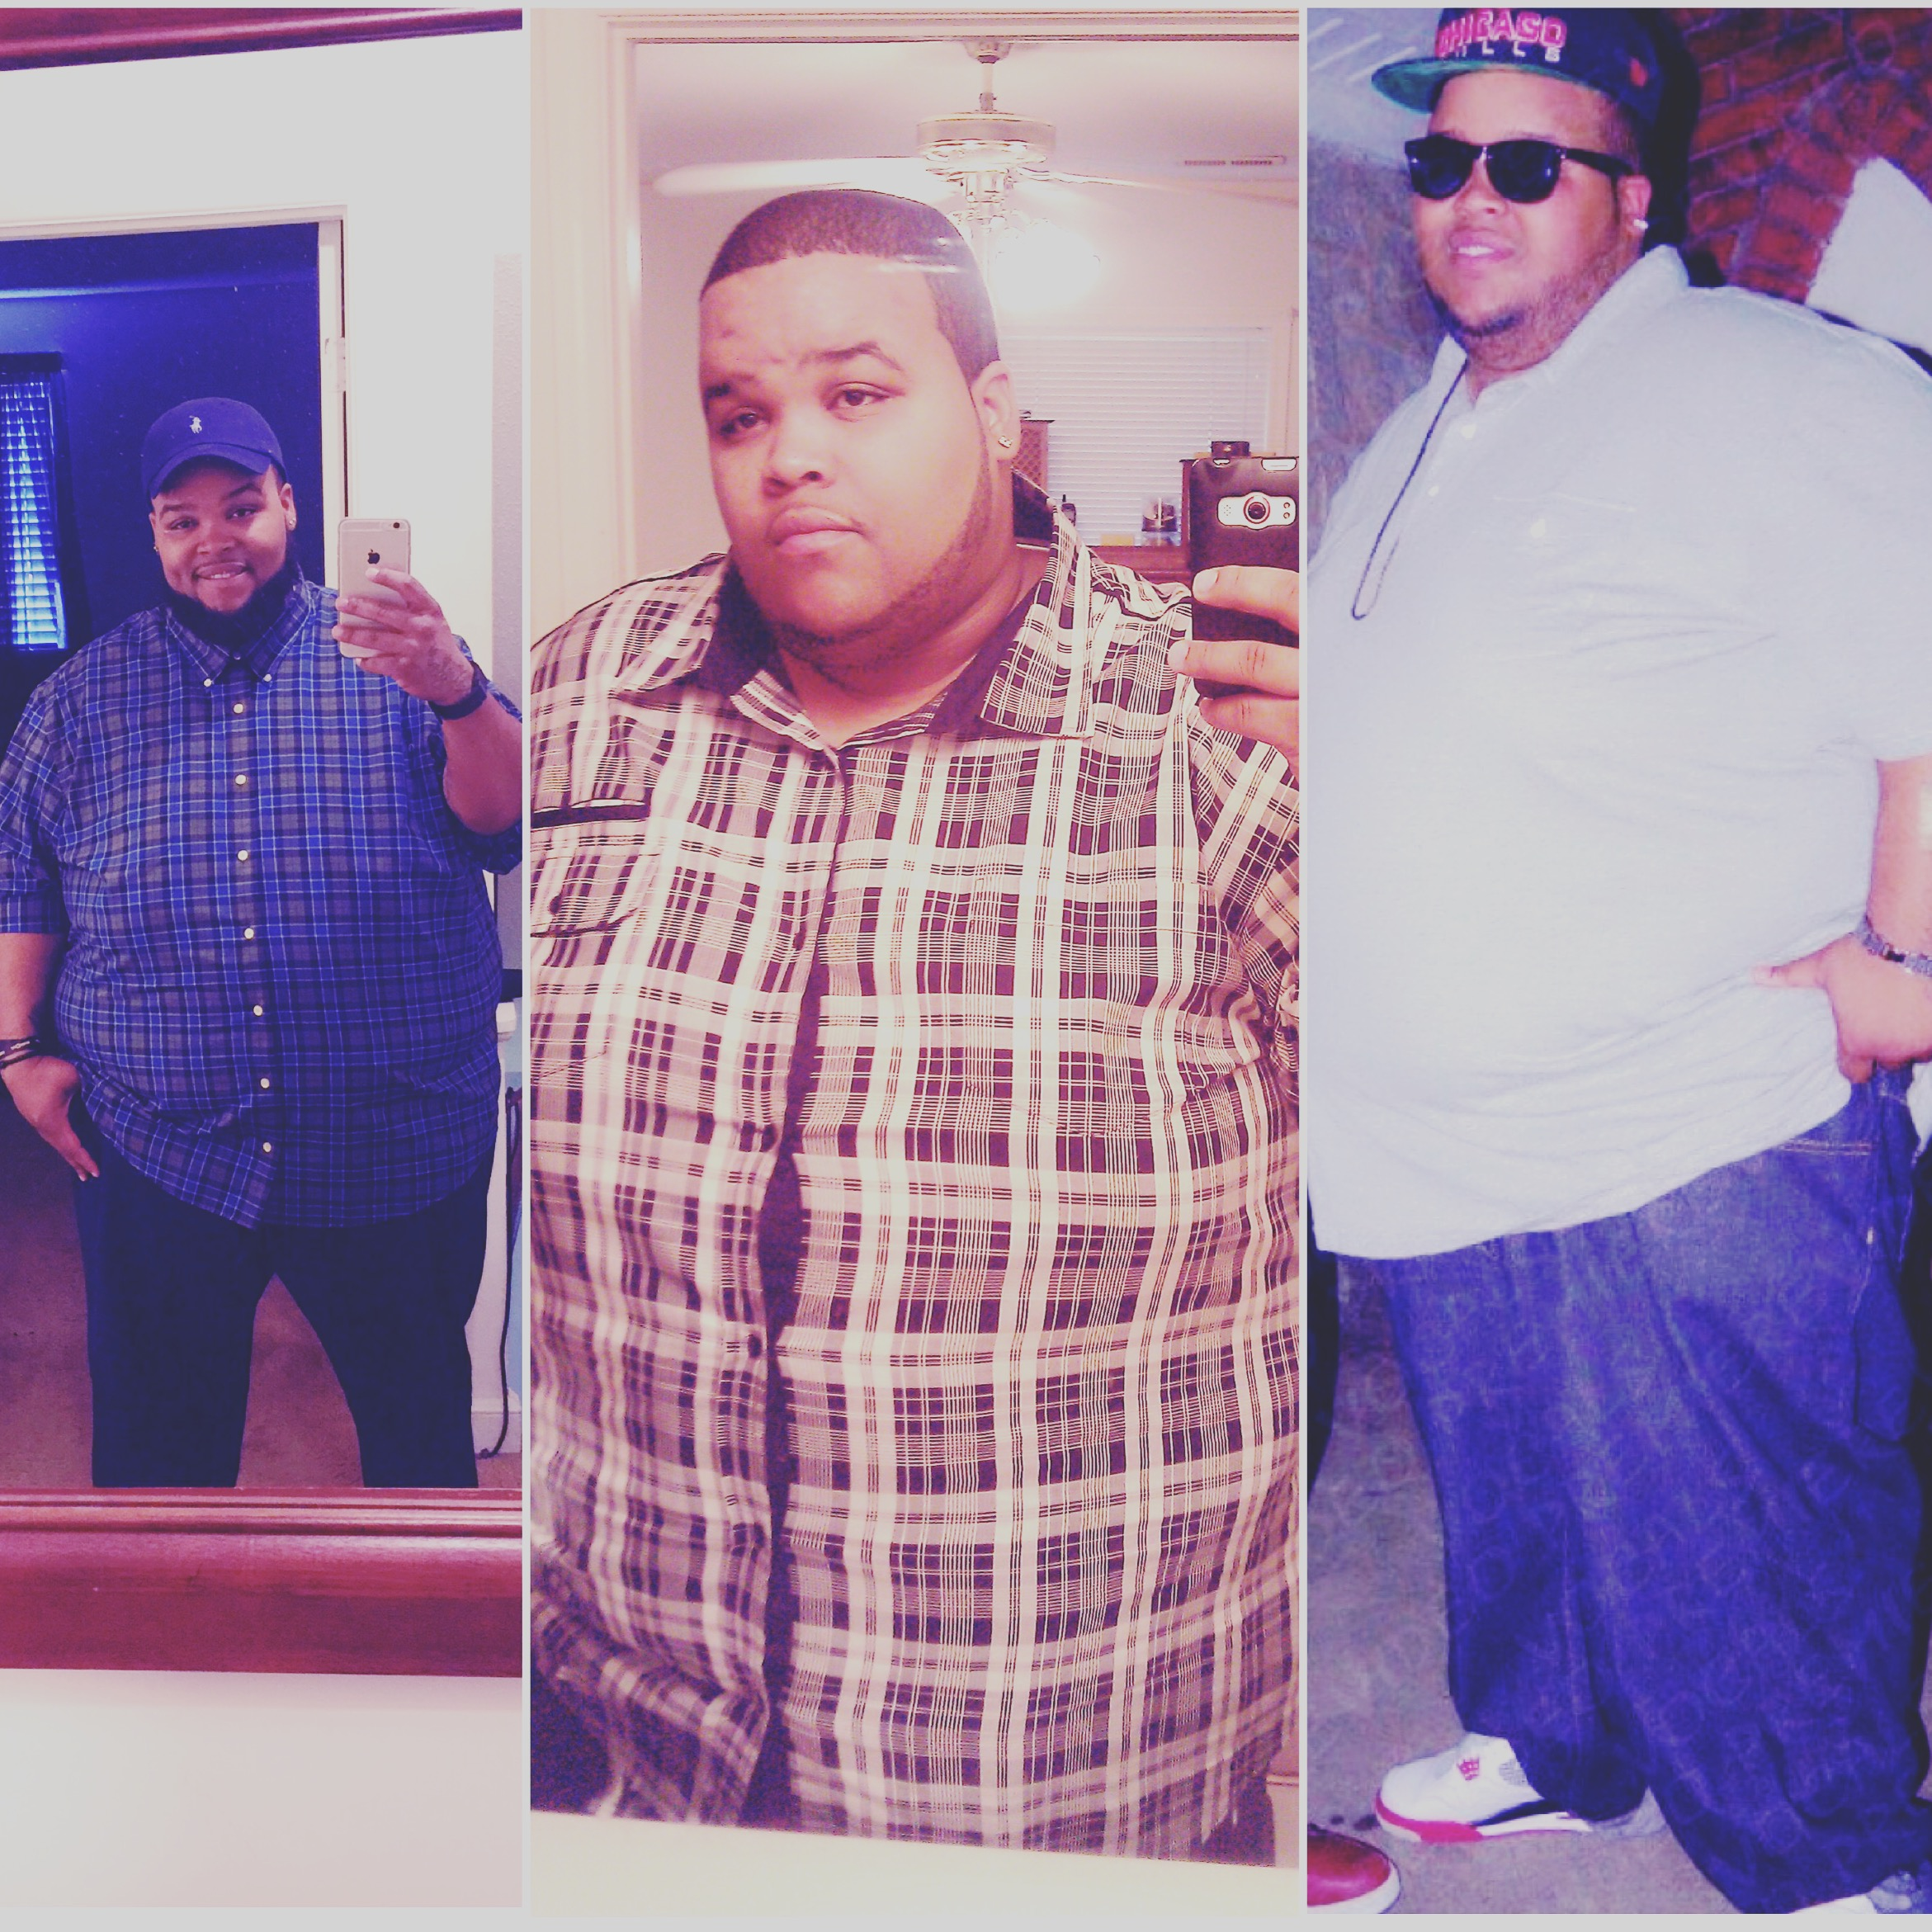 Great success story! Read before and after fitness transformation stories from women and men who hit weight loss goals and got THAT BODY with training and meal prep. Find inspiration, motivation, and workout tips | 252 Pounds Lost: 598lb Artist Concurs Extreme Weight Lost to Save Life